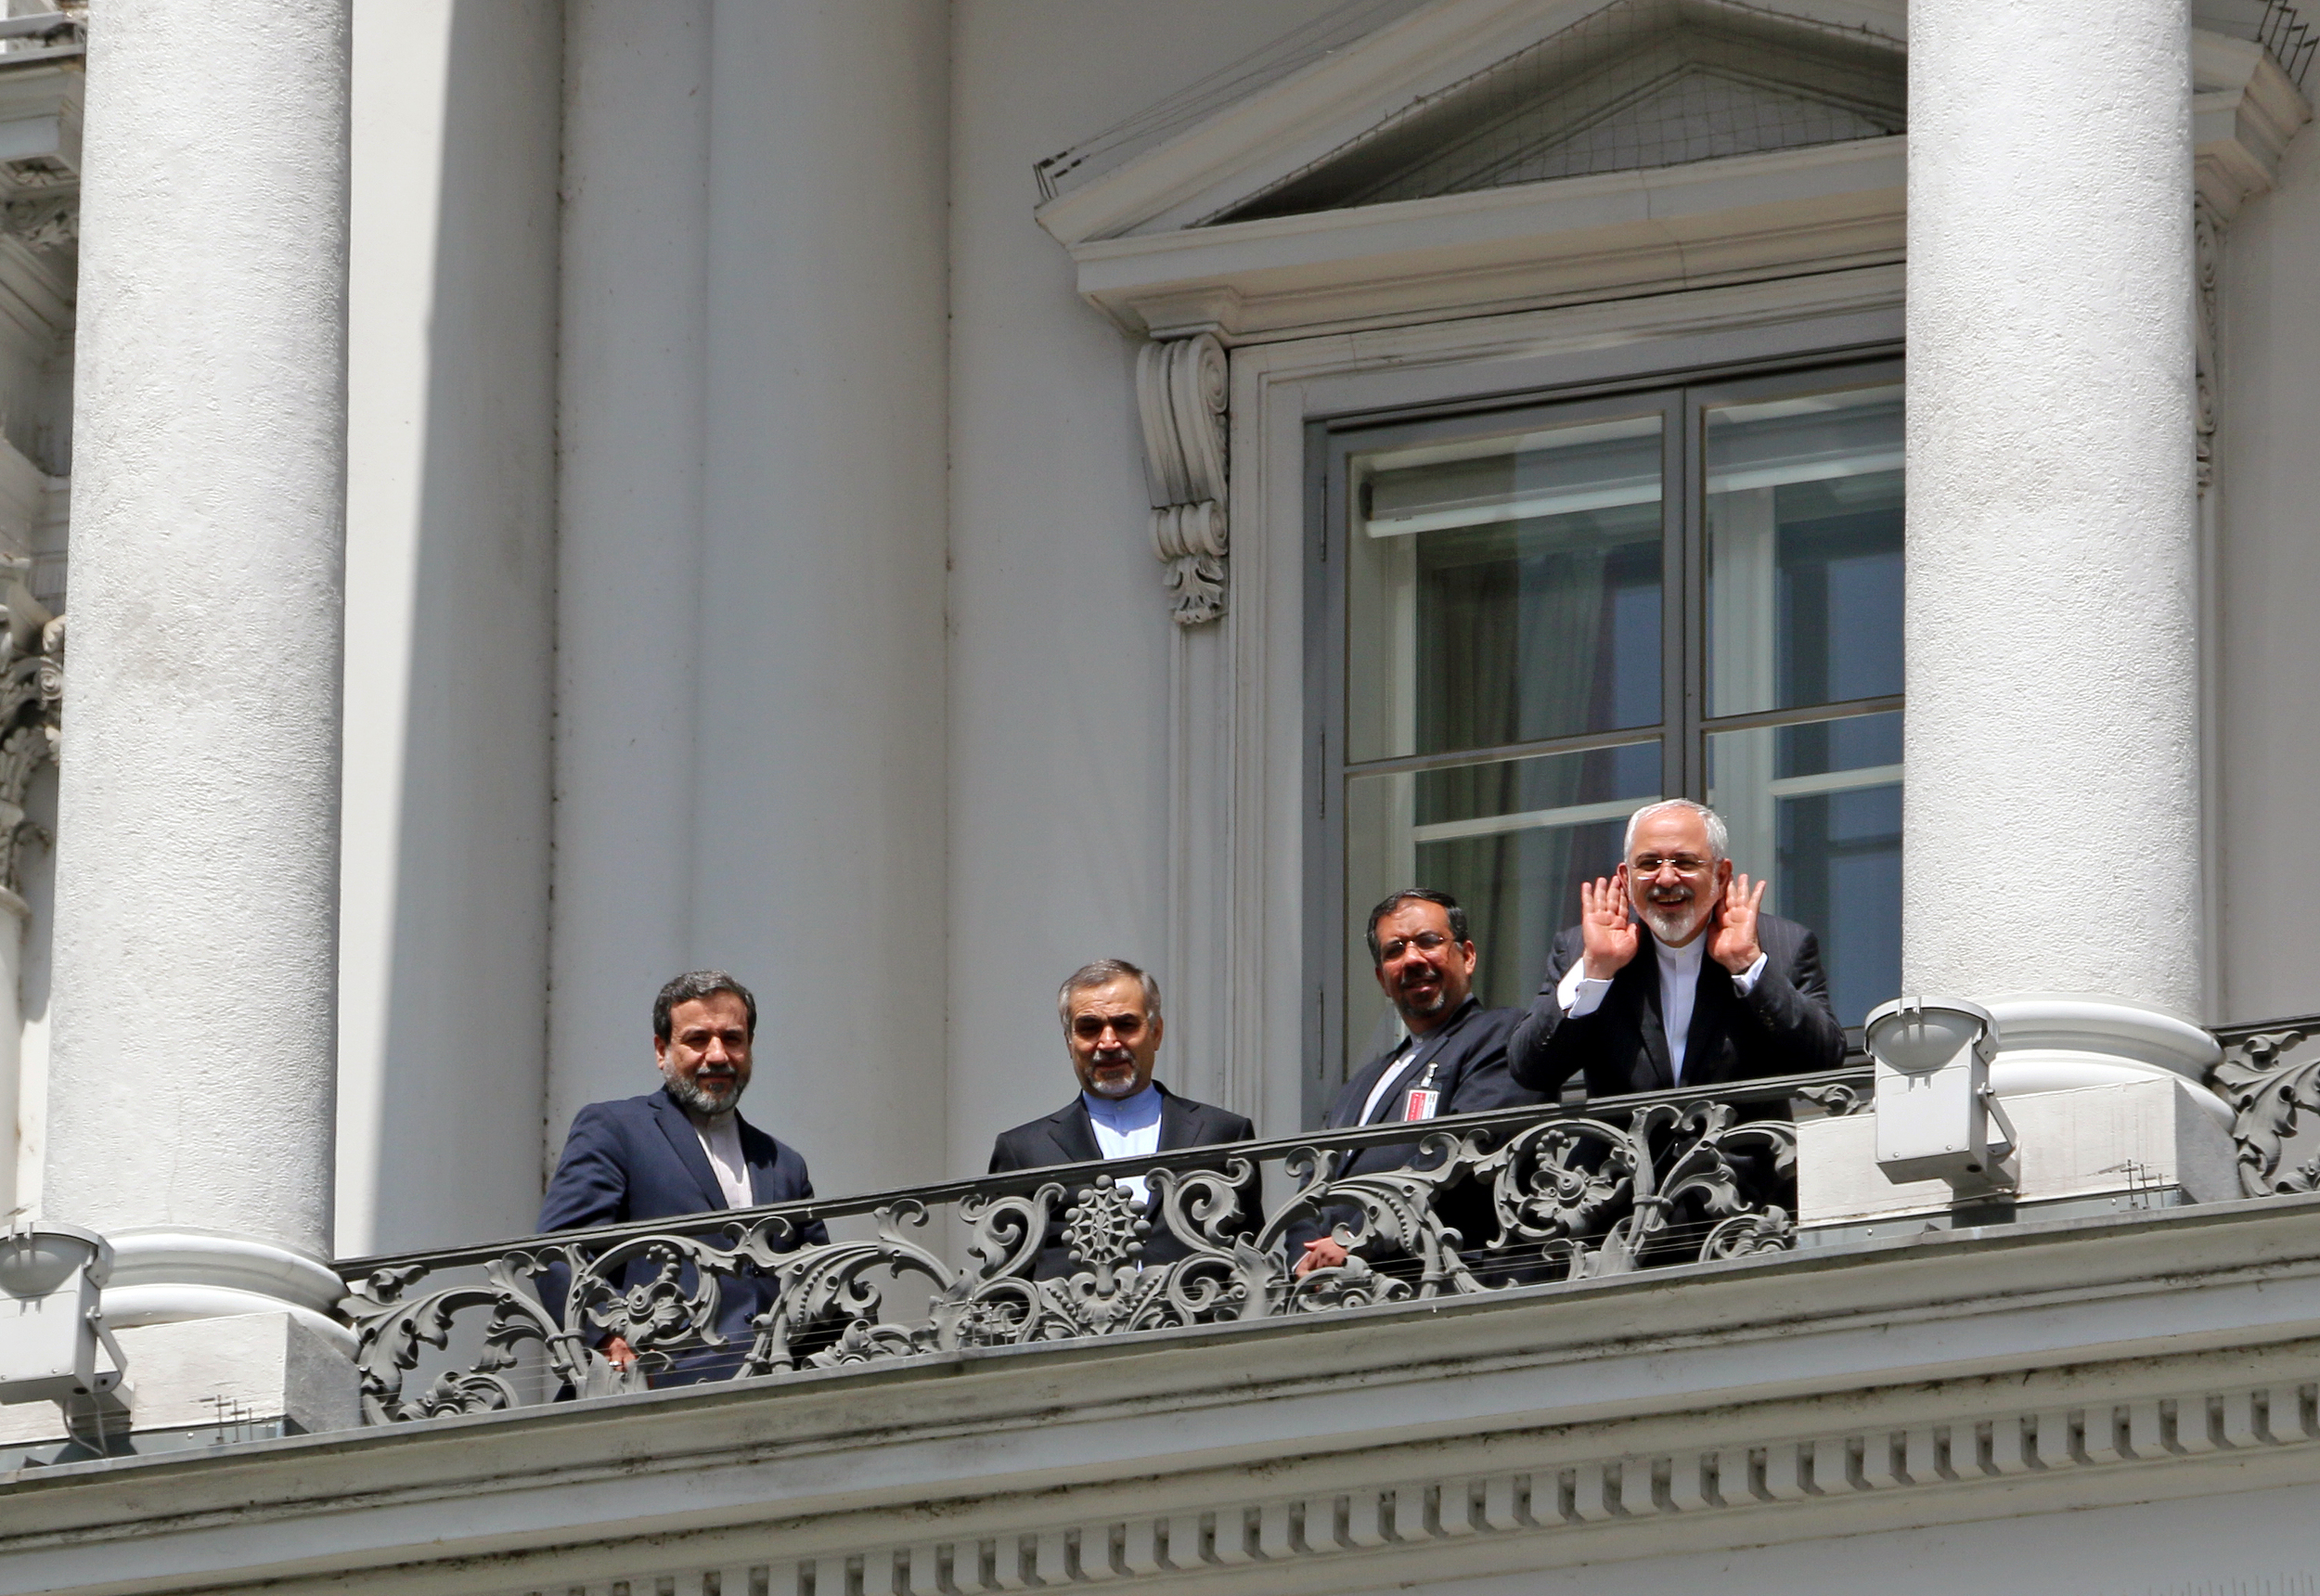 Iranian Foreign Minister Mohammad Javad Zarif and his team meet on a balcony of the Palais Coburg -- Vienna, Austria